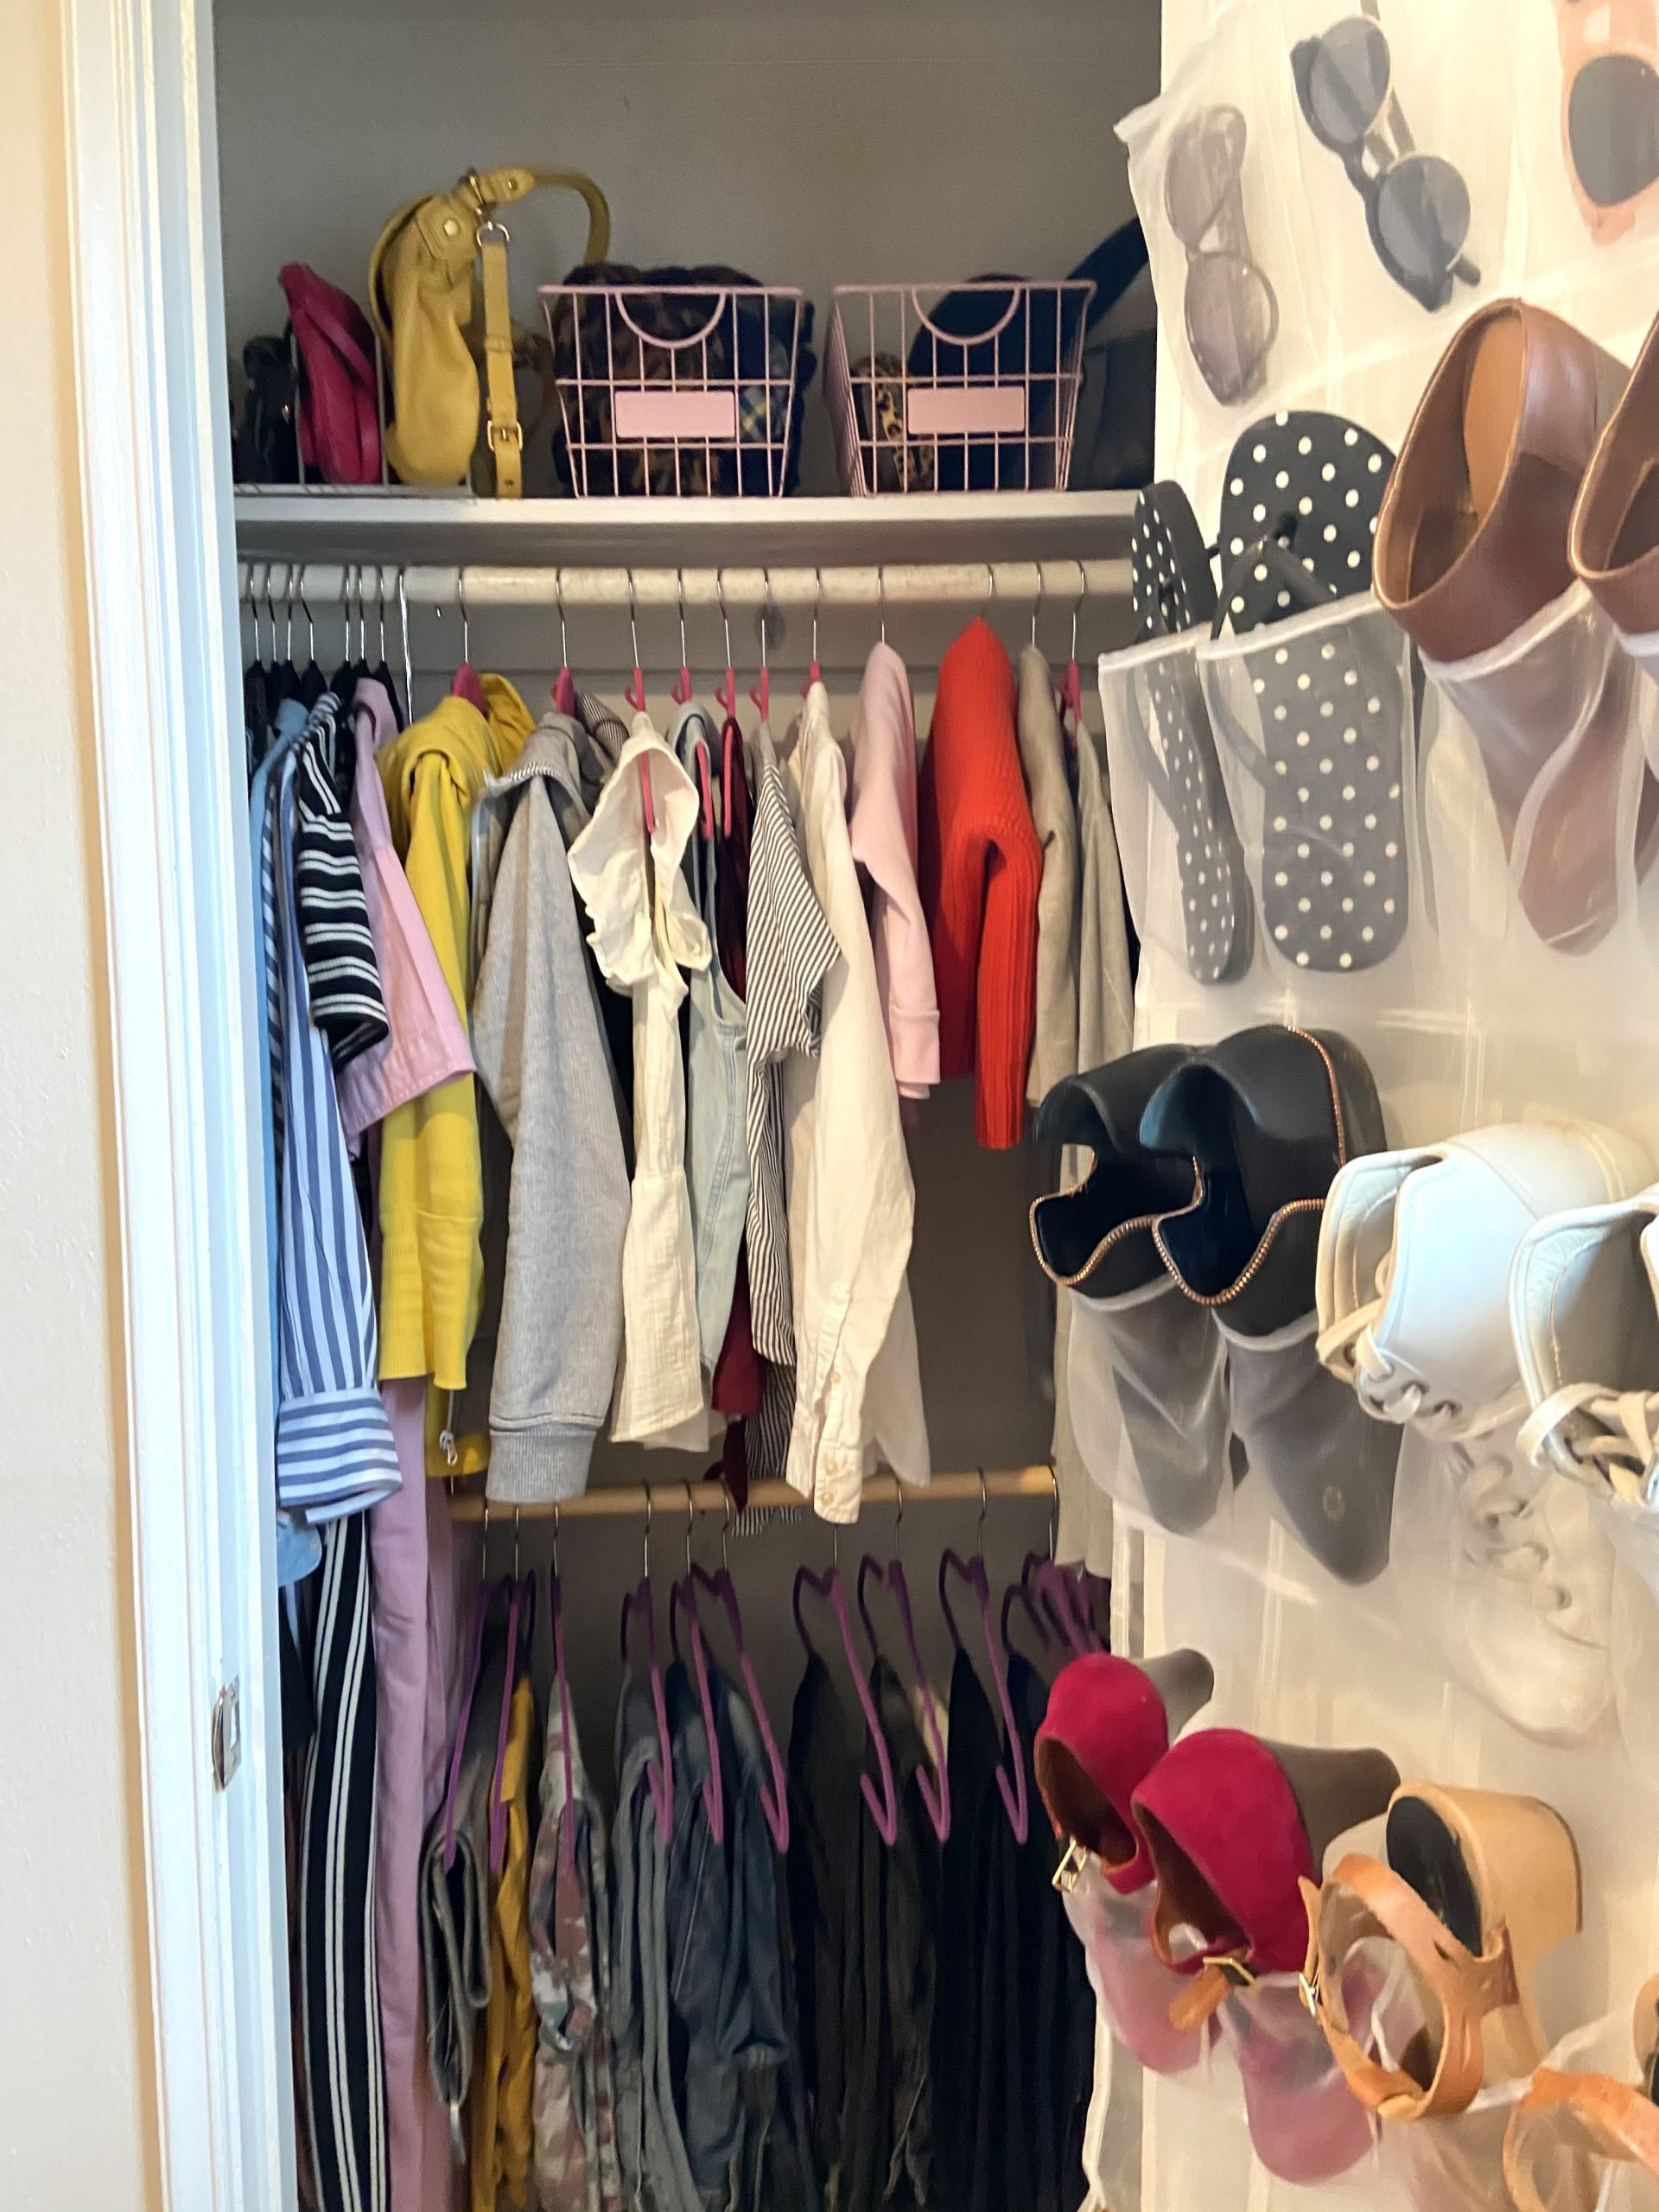 organize your wardrobe to feel good